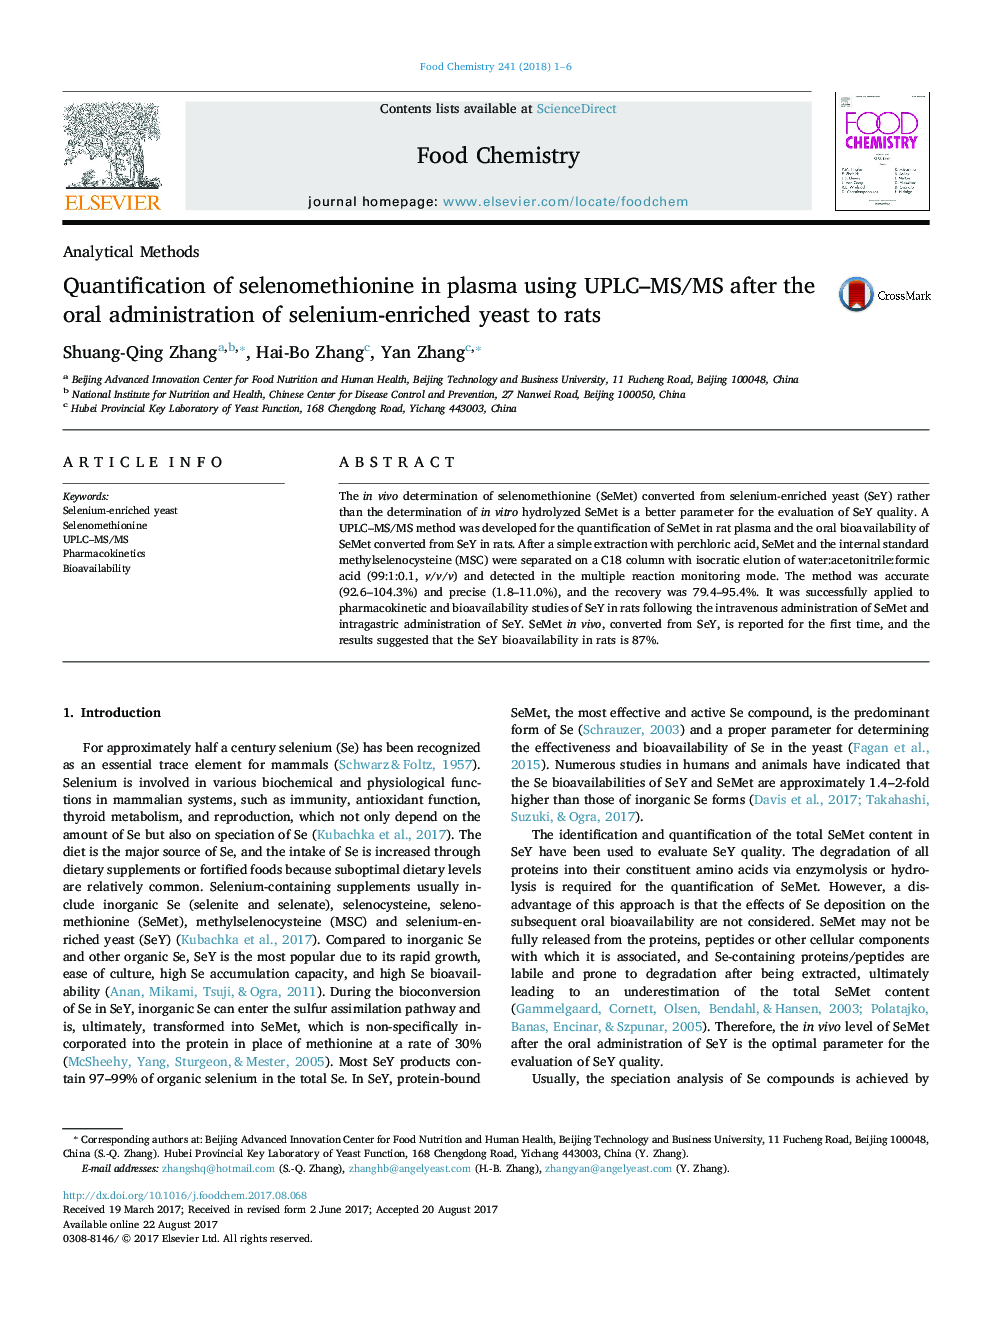 Quantification of selenomethionine in plasma using UPLC-MS/MS after the oral administration of selenium-enriched yeast to rats